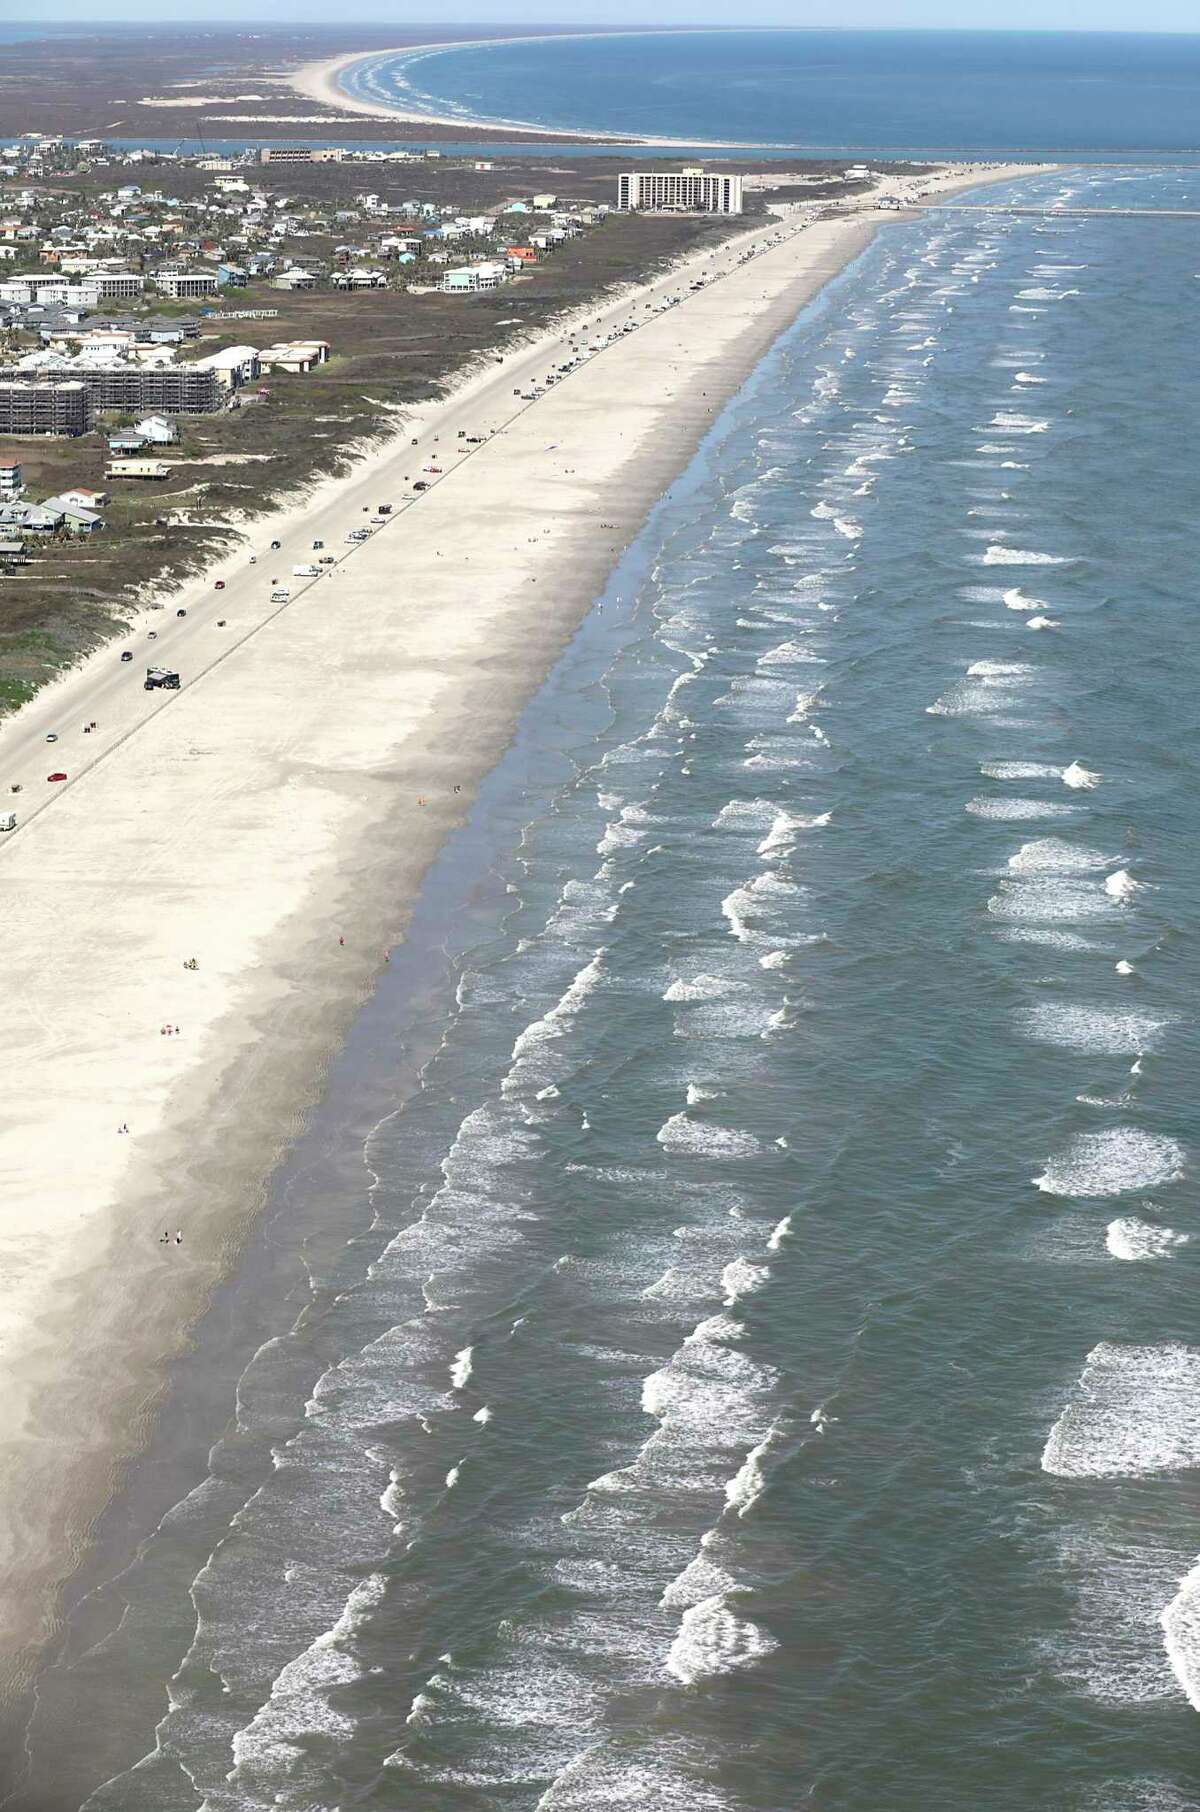 On Tuesday, Nueces County officials announced in a news release that they will temporarily restrict vehicular access on Corpus Christi and Port Aransas beaches until July 7 to help slow the spread of the statewide COVID-19 spike.